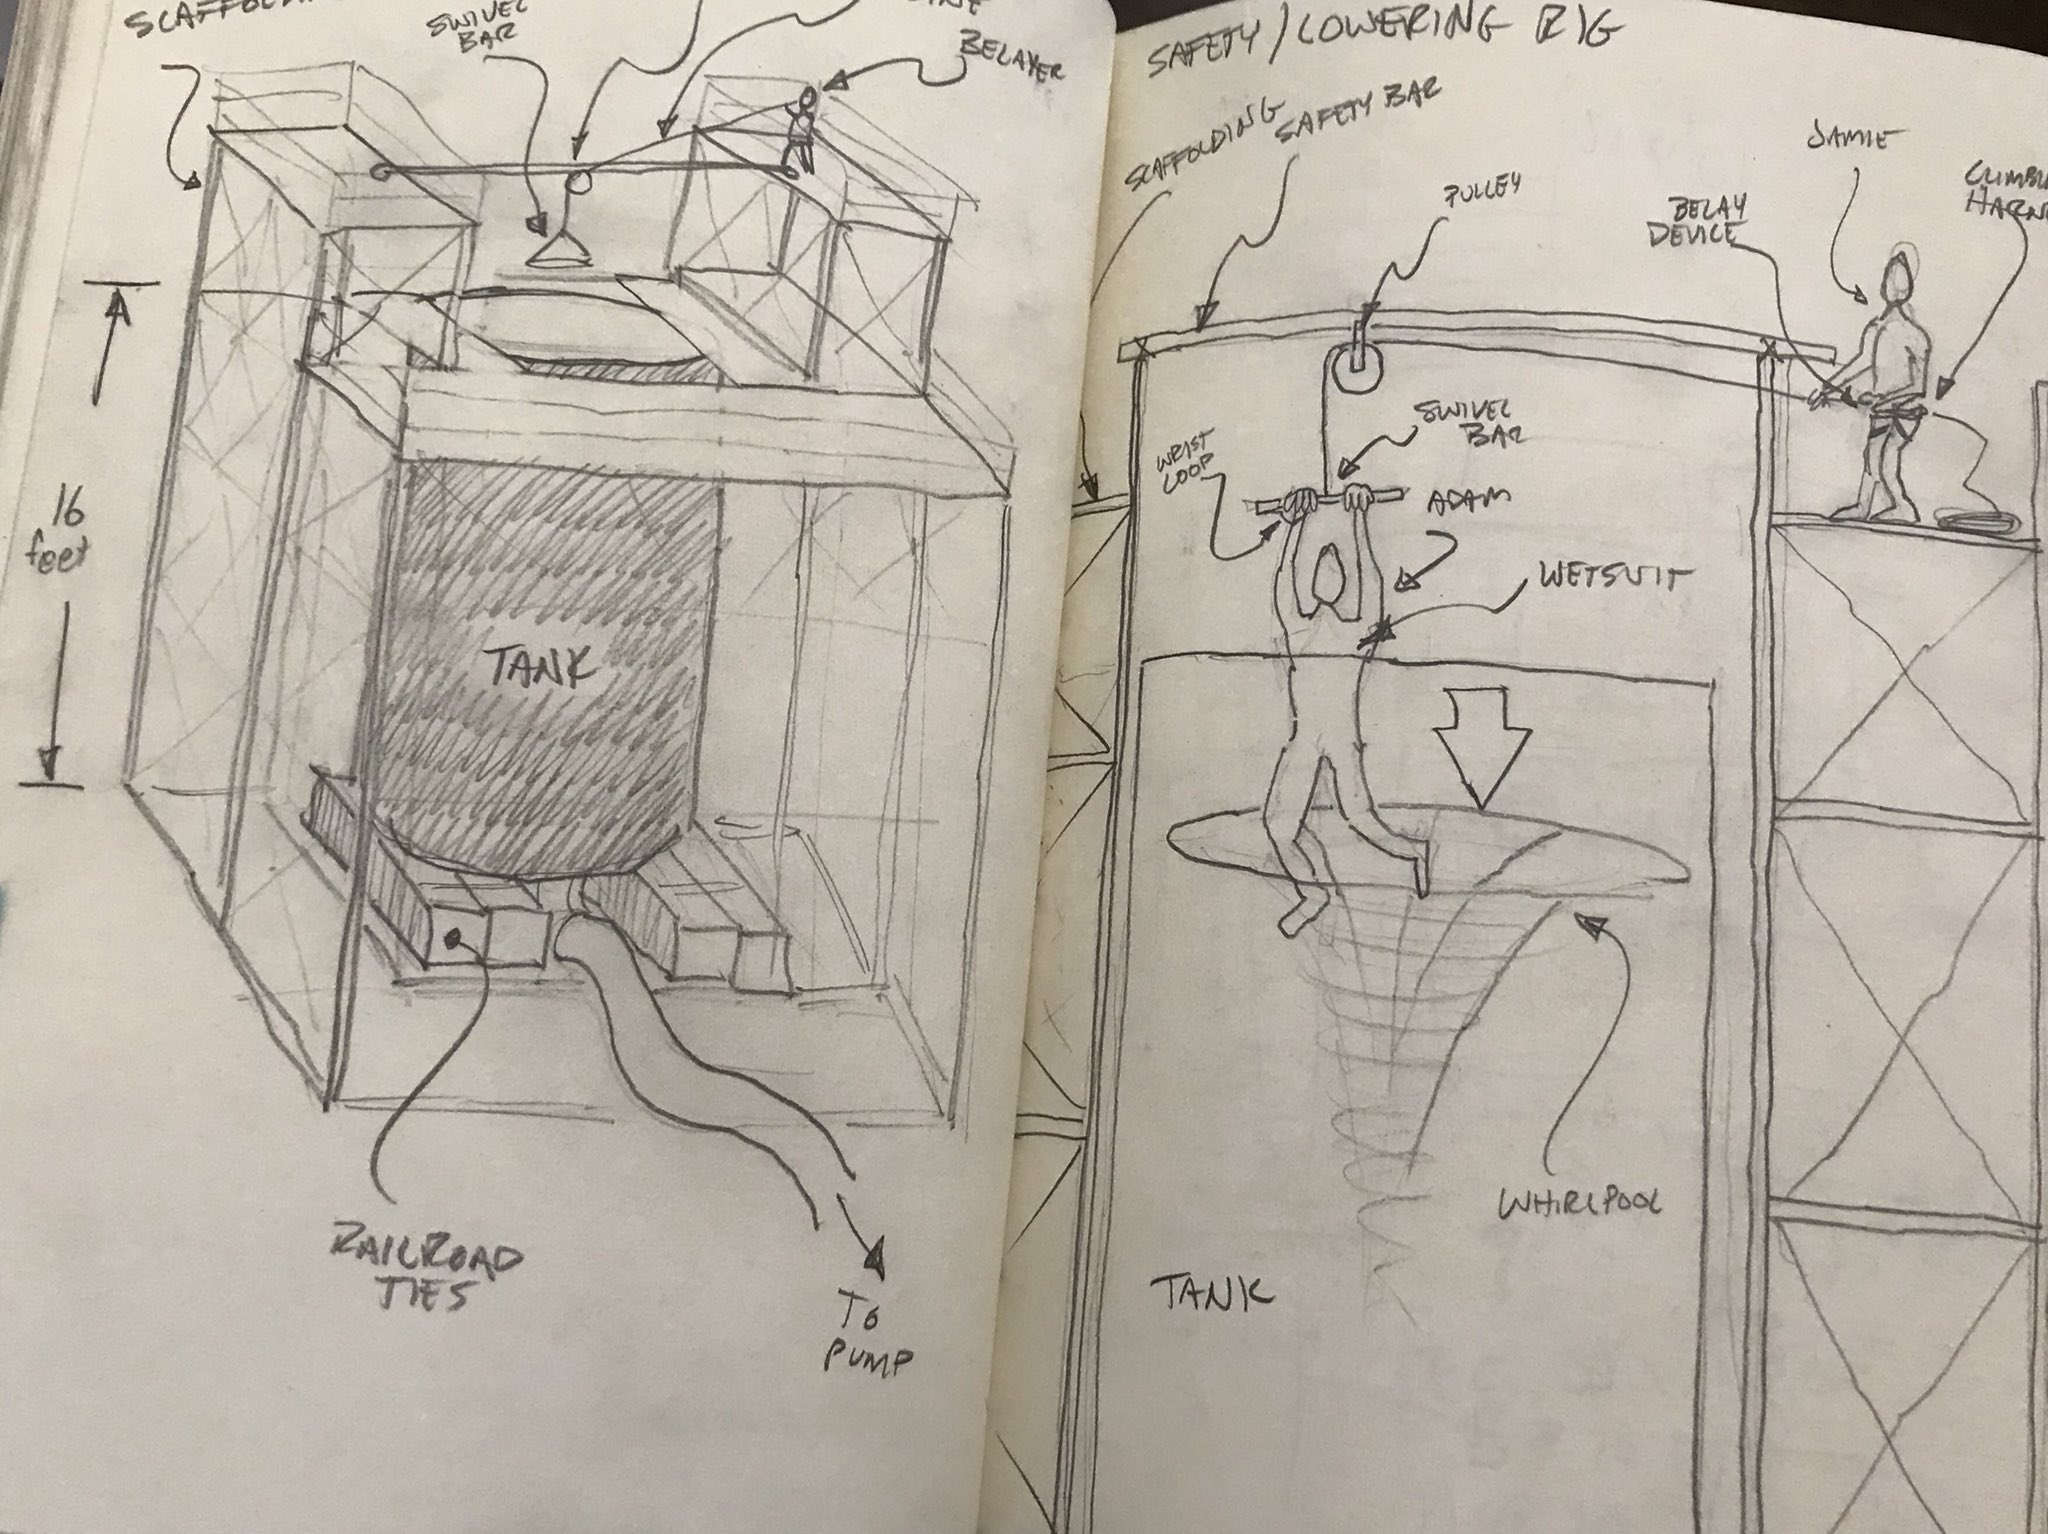 Adam savage on twitter remember whirlpool of death i found the adam savage on twitter remember whirlpool of death i found the original sketch of the experimental layout tbt mythbusters malvernweather Gallery